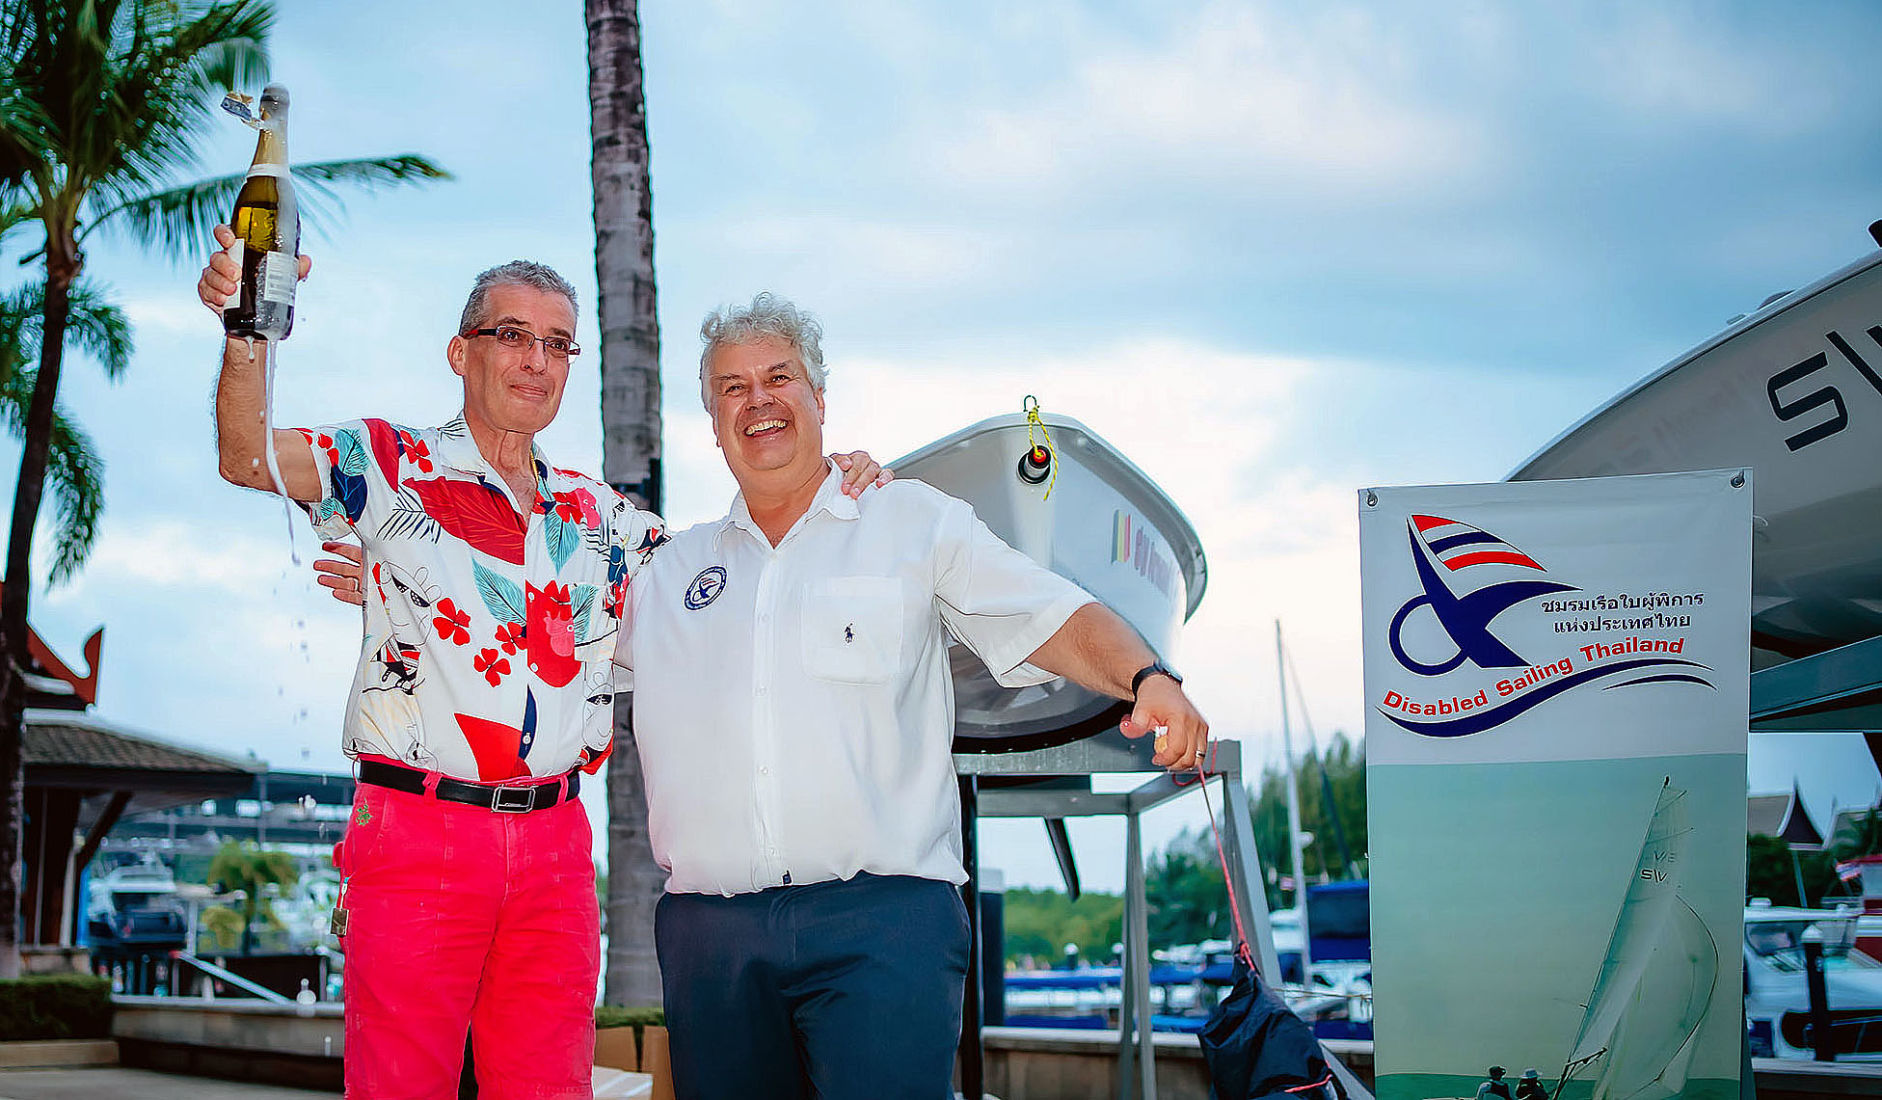 Two new SV 14 boats donated to Disabled Sailing Thailand in Phuket   Thaiger